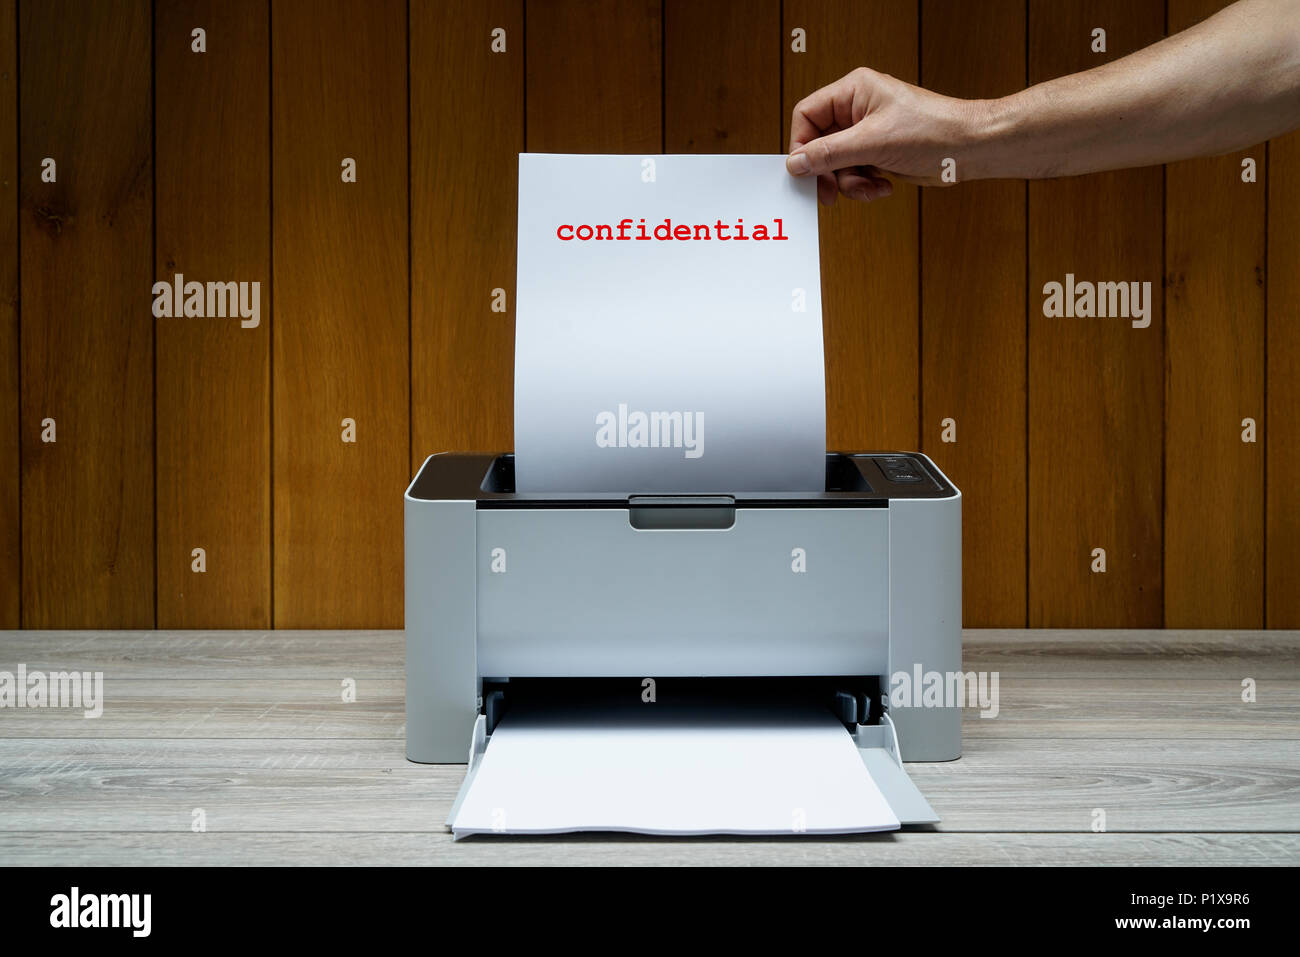 printing a confidential document - Stock Image